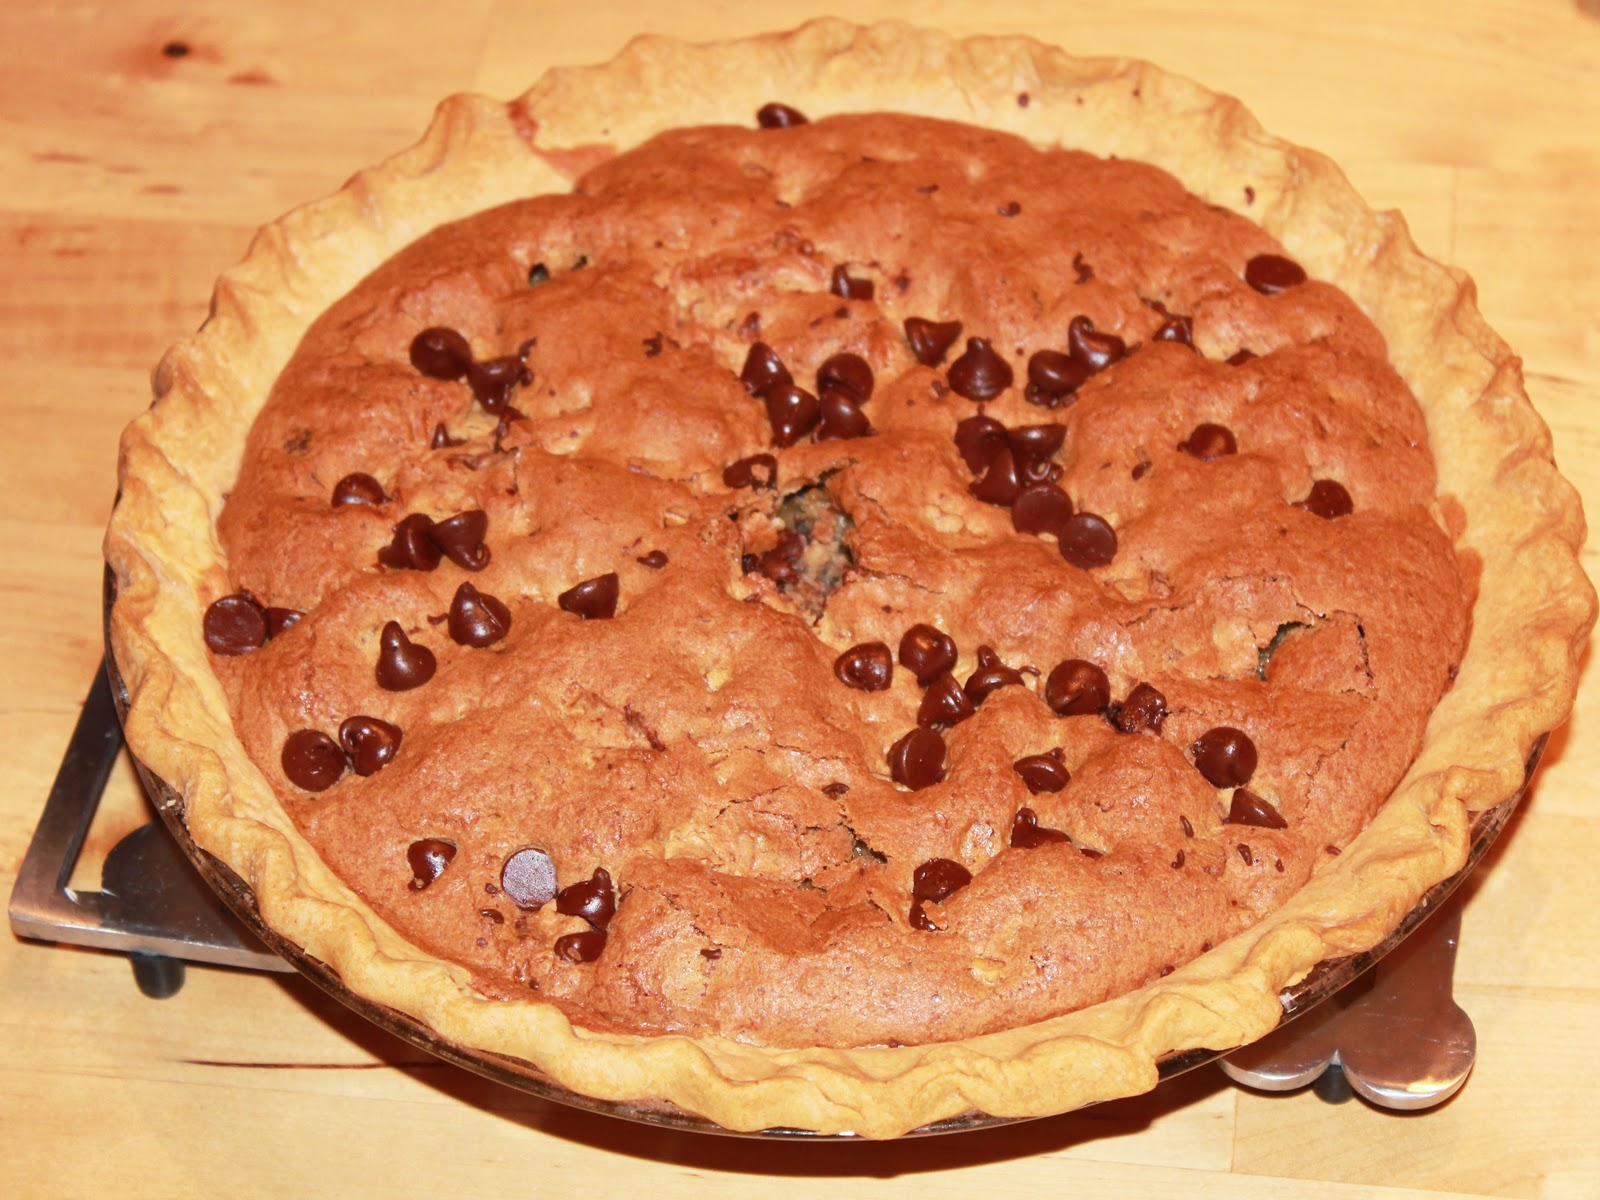 Musings by Jacquelyn: Chocolate Chip Pie